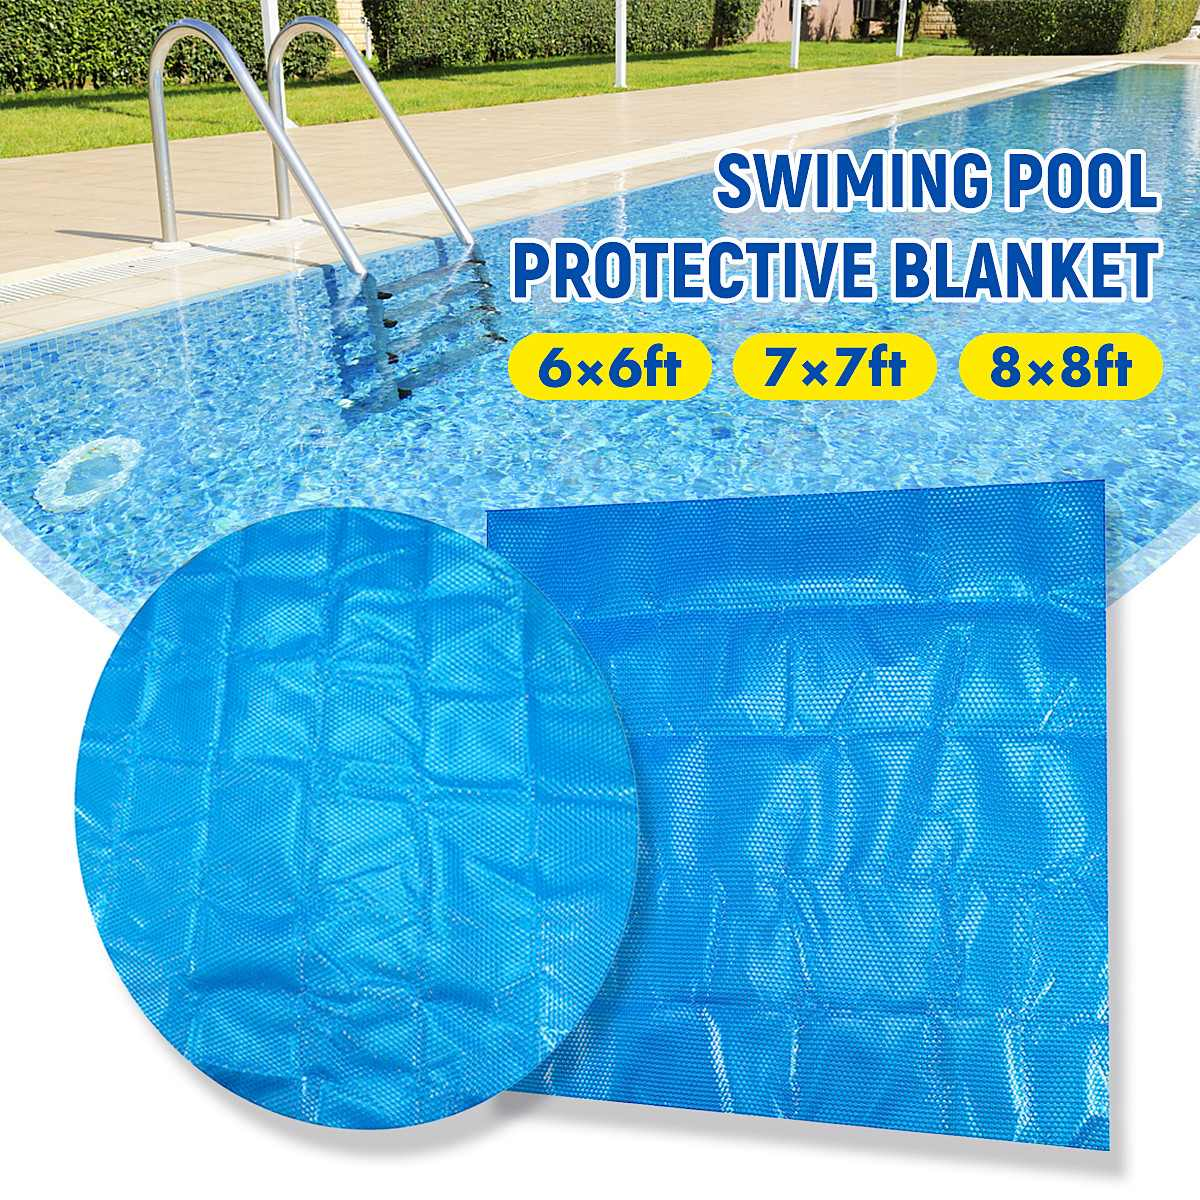 US $27.06 6% OFF|Newest Pool Cover 1.8*1.8m/2.1x2.1m/2.4x2.4m Square/Round  Solar Swimming Pool Tub Cover 400m Outdoor Bubble Blanket Accessories-in ...